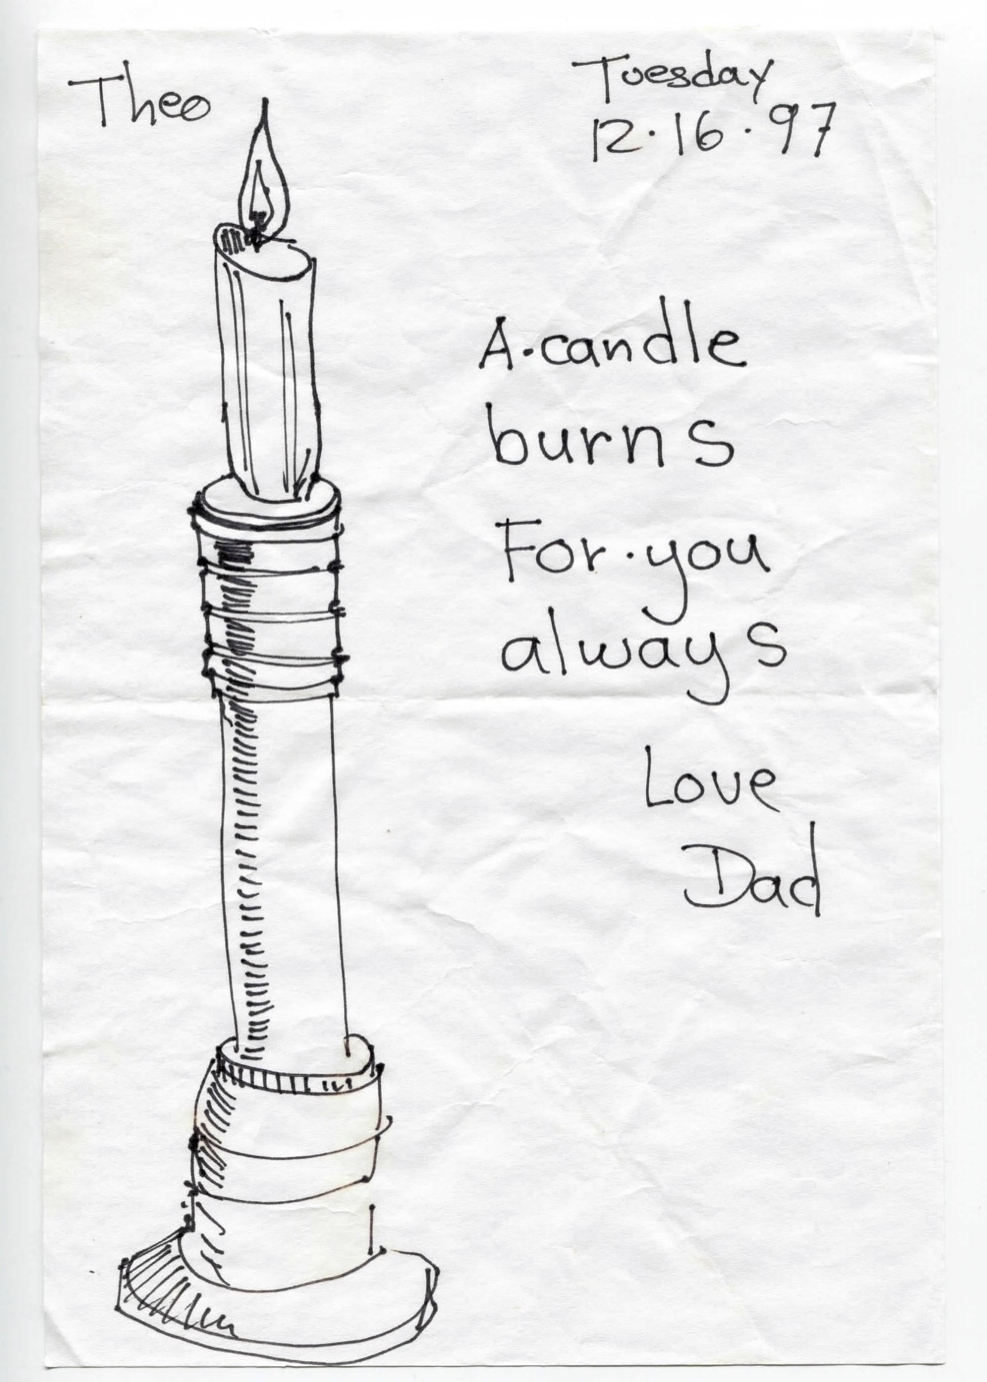 A candle burns for you always.